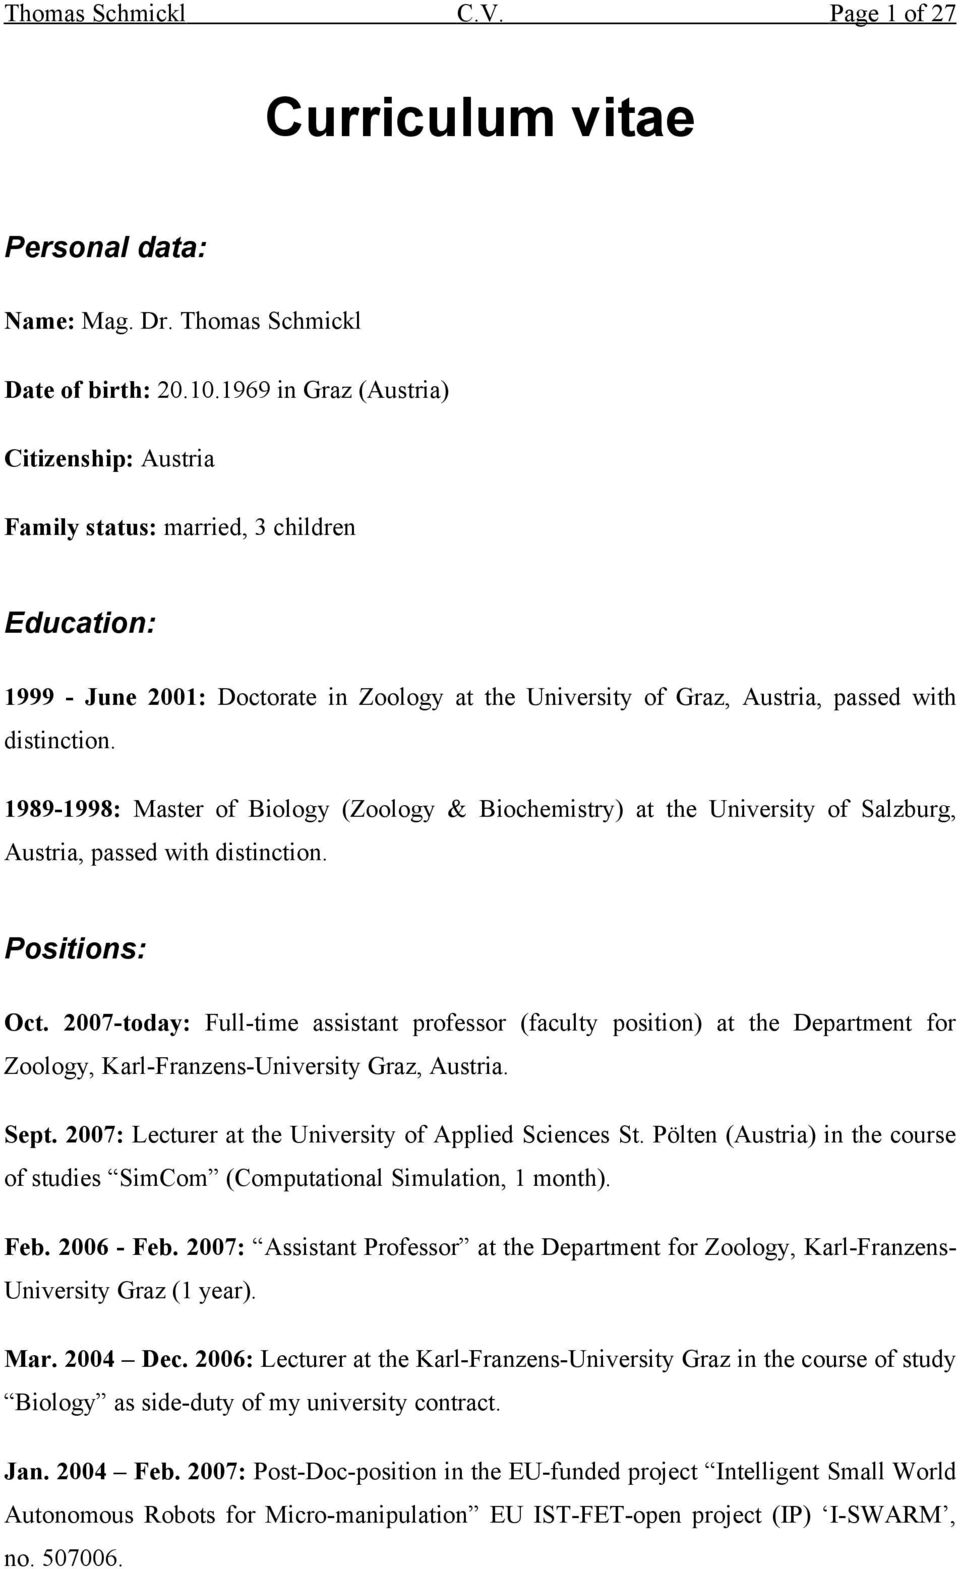 1989-1998: Master of Biology (Zoology & Biochemistry) at the University of Salzburg, Austria, passed with distinction. Positions: Oct.